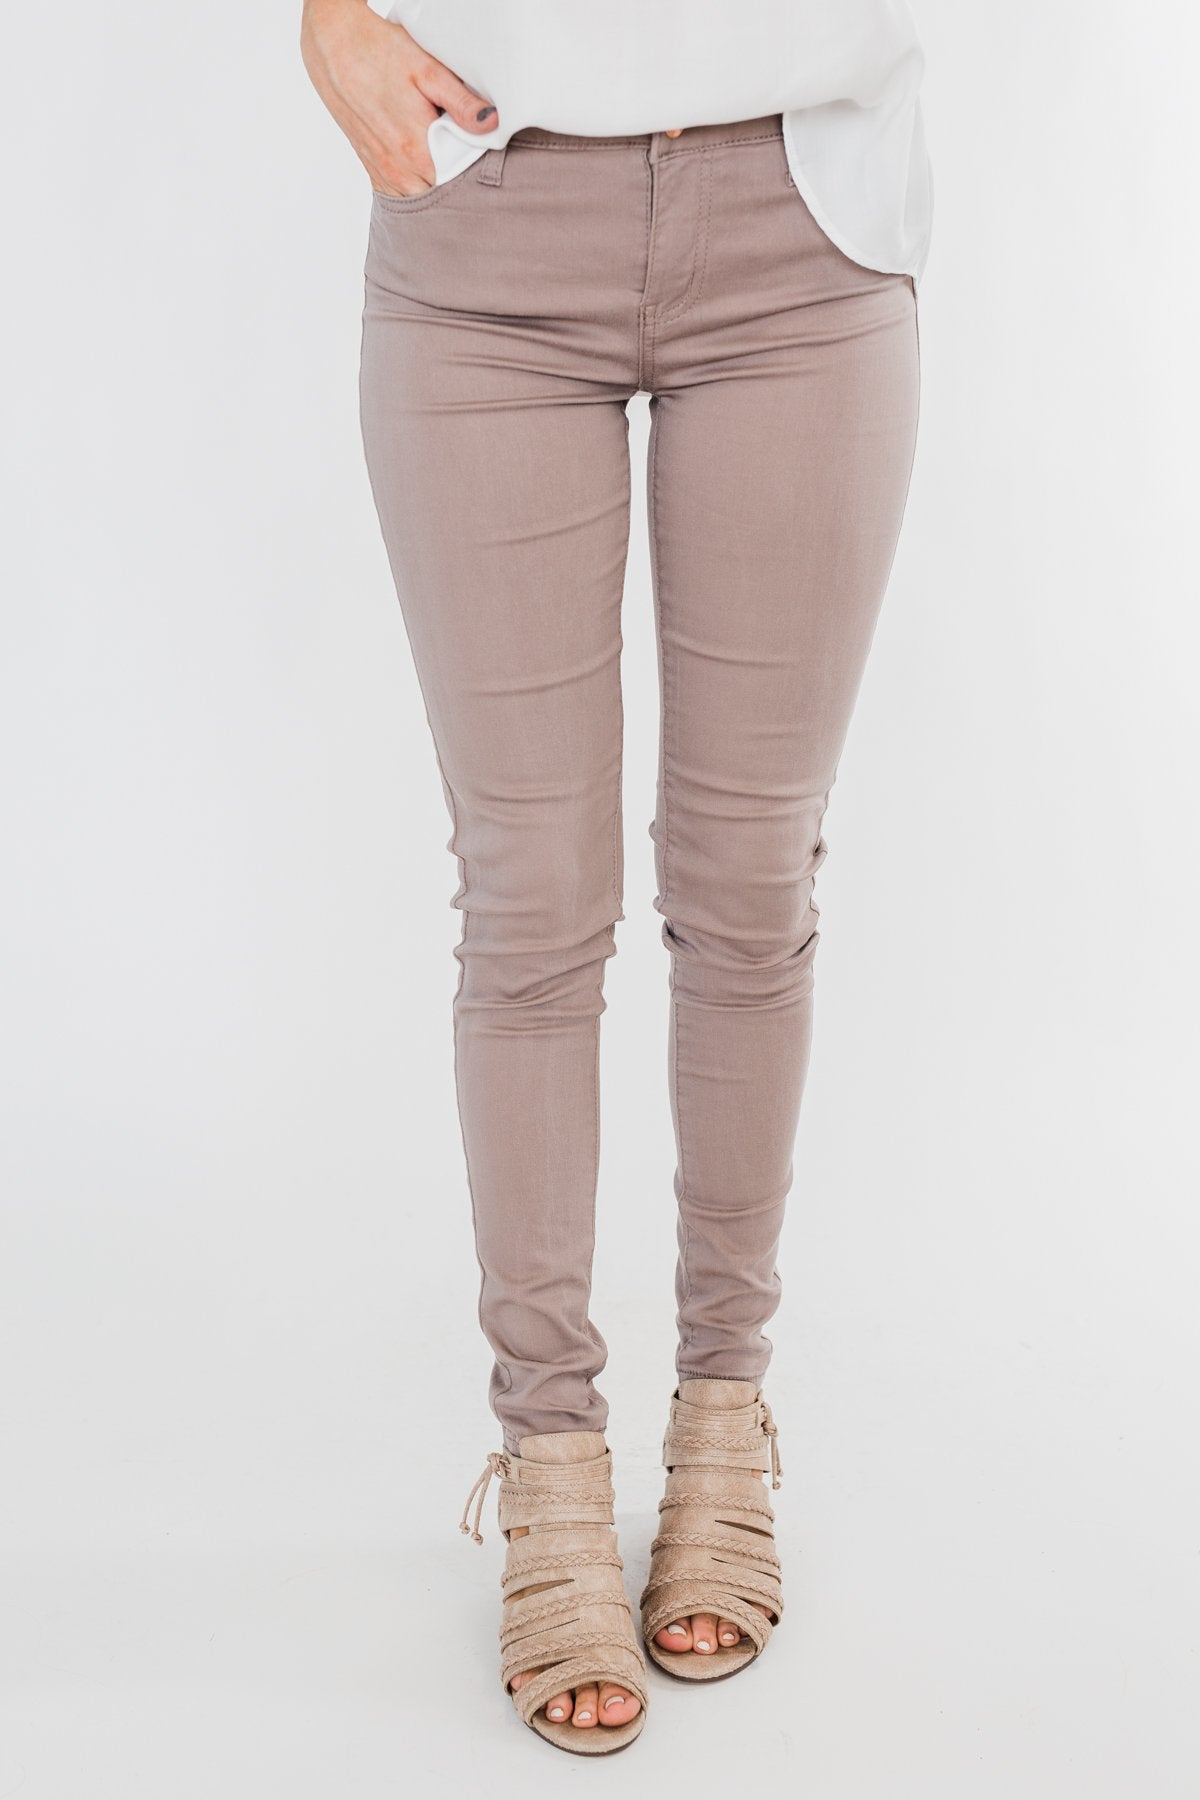 Celebrity Pink Skinny Jeans- Taupe